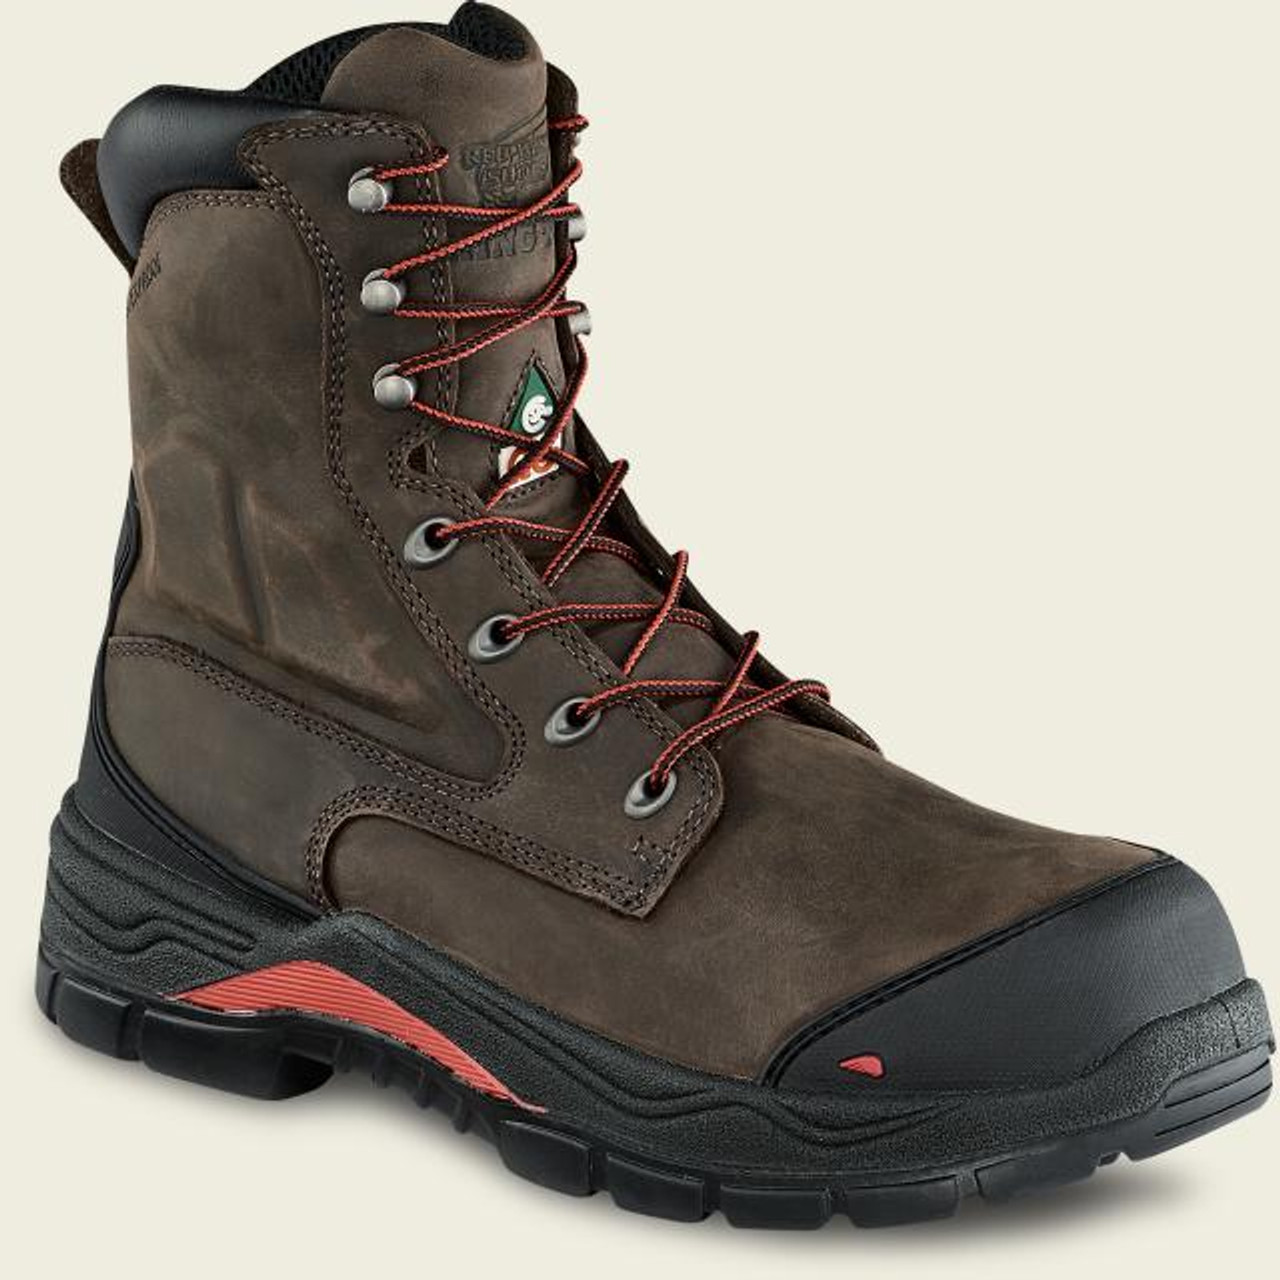 759a597995376 Men's Red Wing 3552 Insulated Waterproof Work Boot